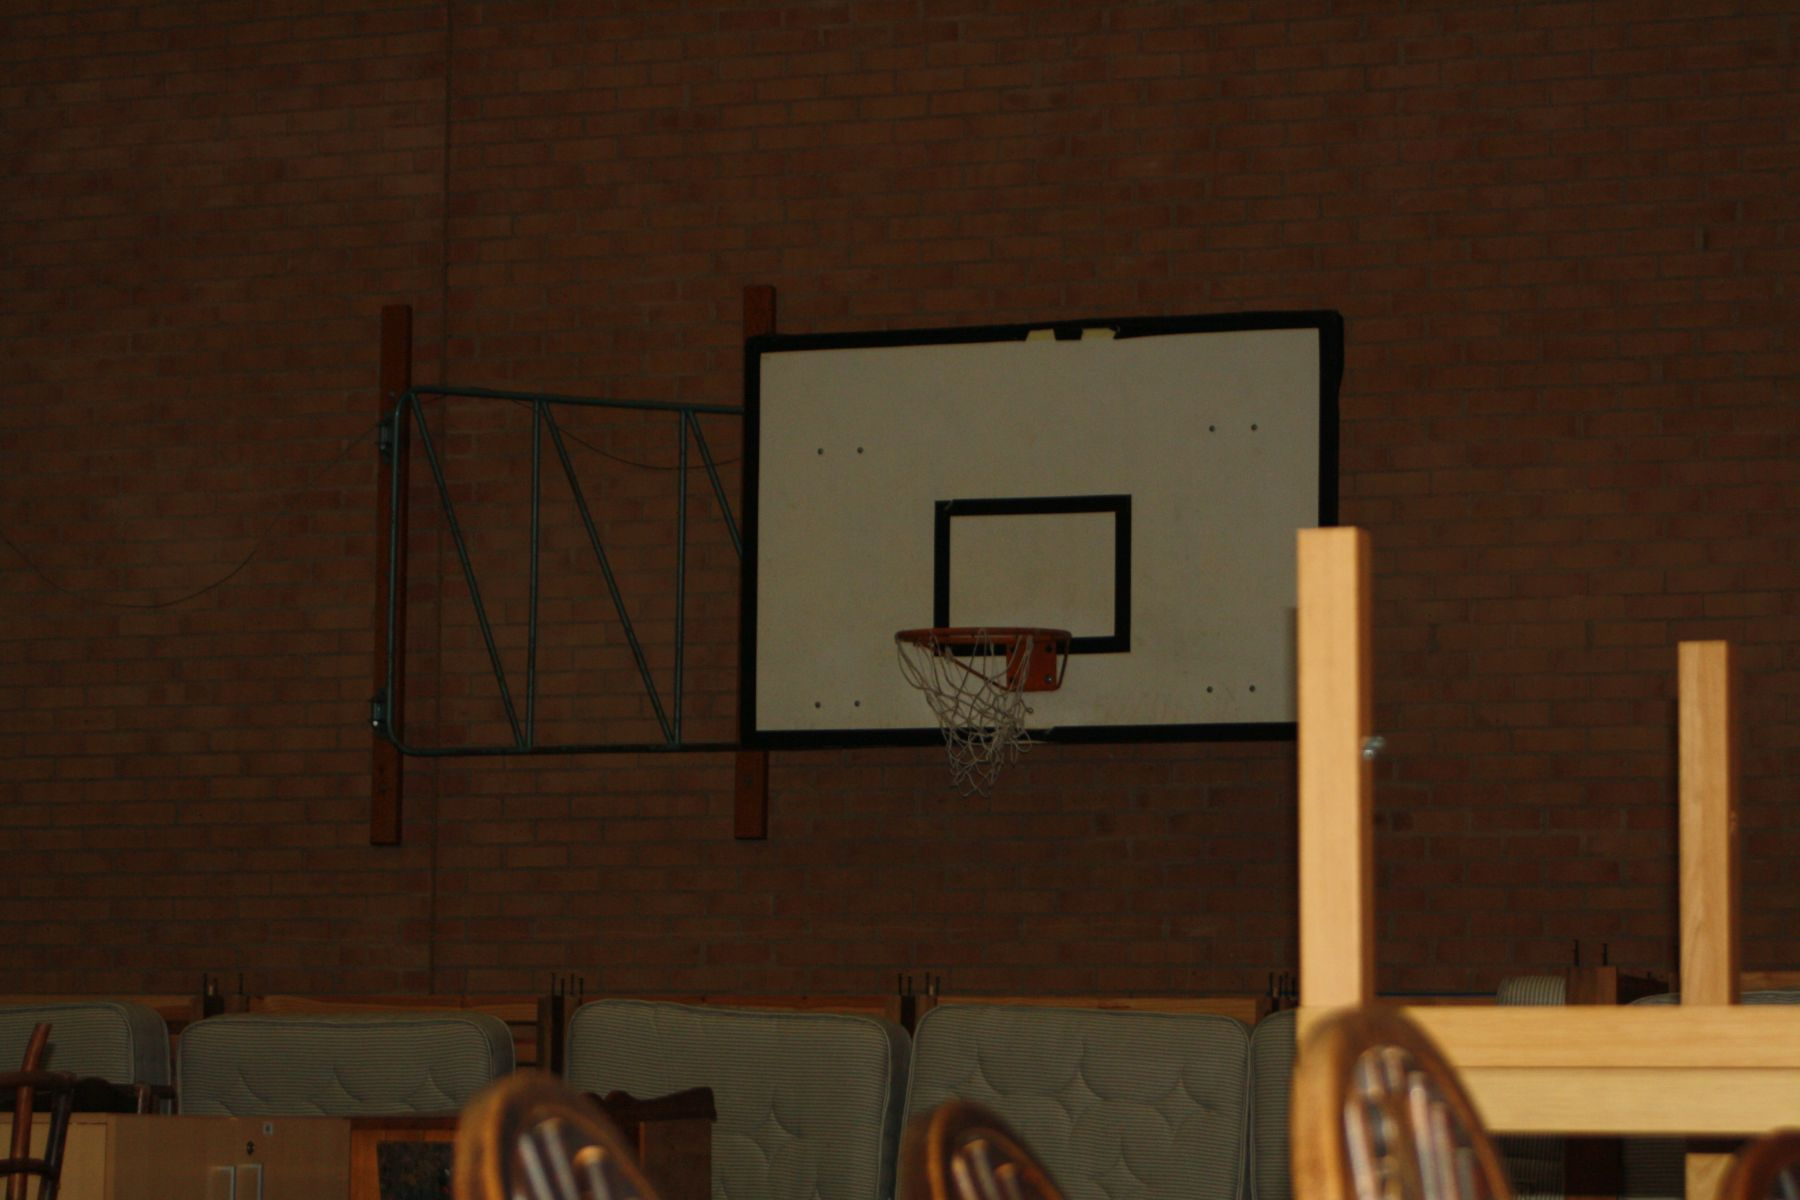 Lot 249 - TWO BASKETBALL BACKBORDS AND RING WALL MOUNTED, (to be removed by buyer adhering to Health and